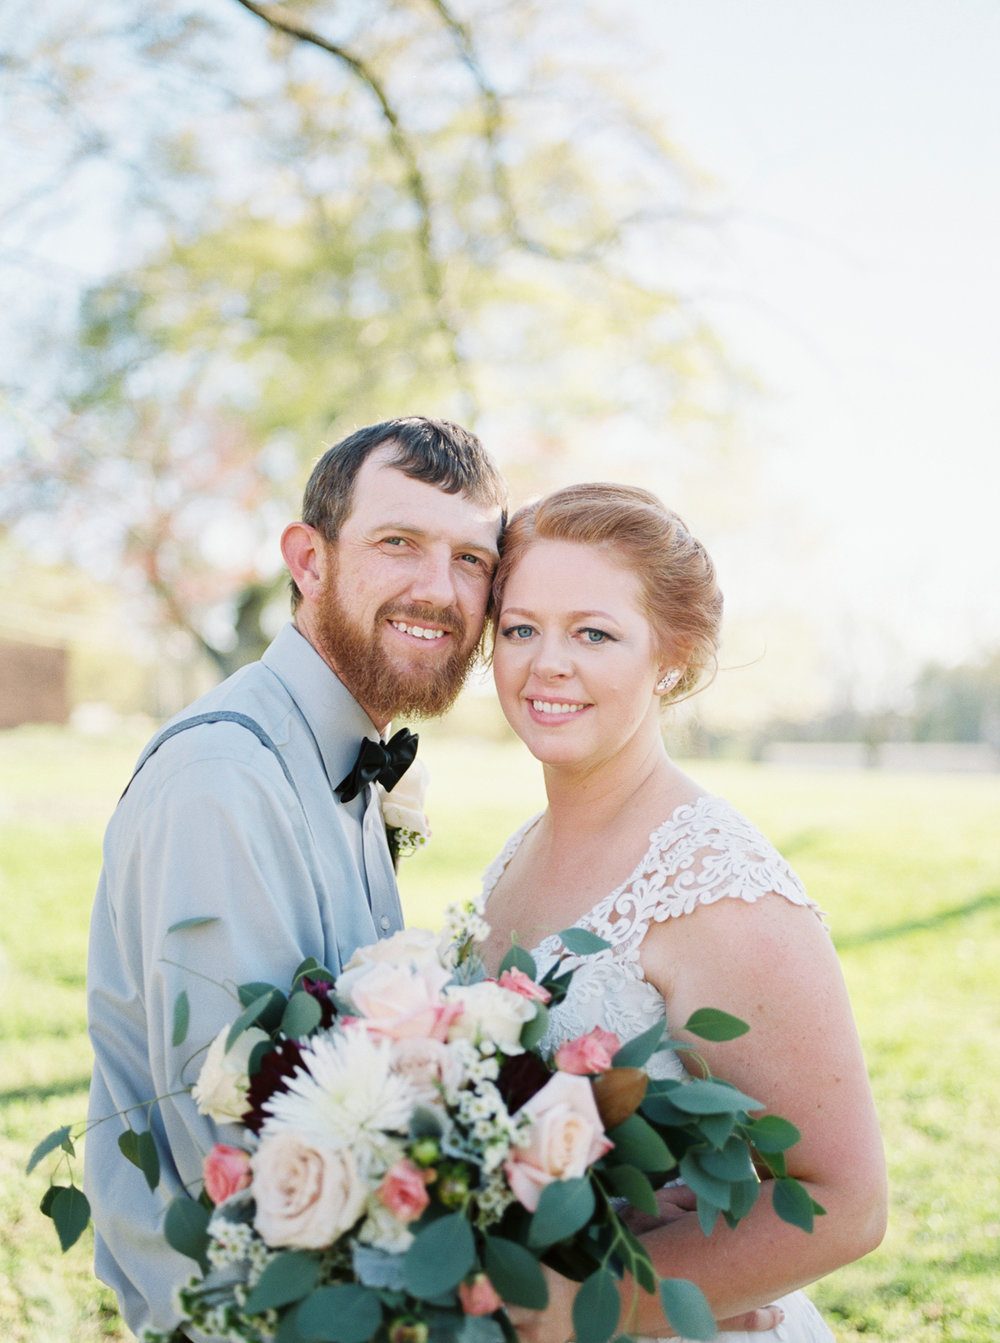 christinadavisphotography+realwedding+aprilfirst01.jpg